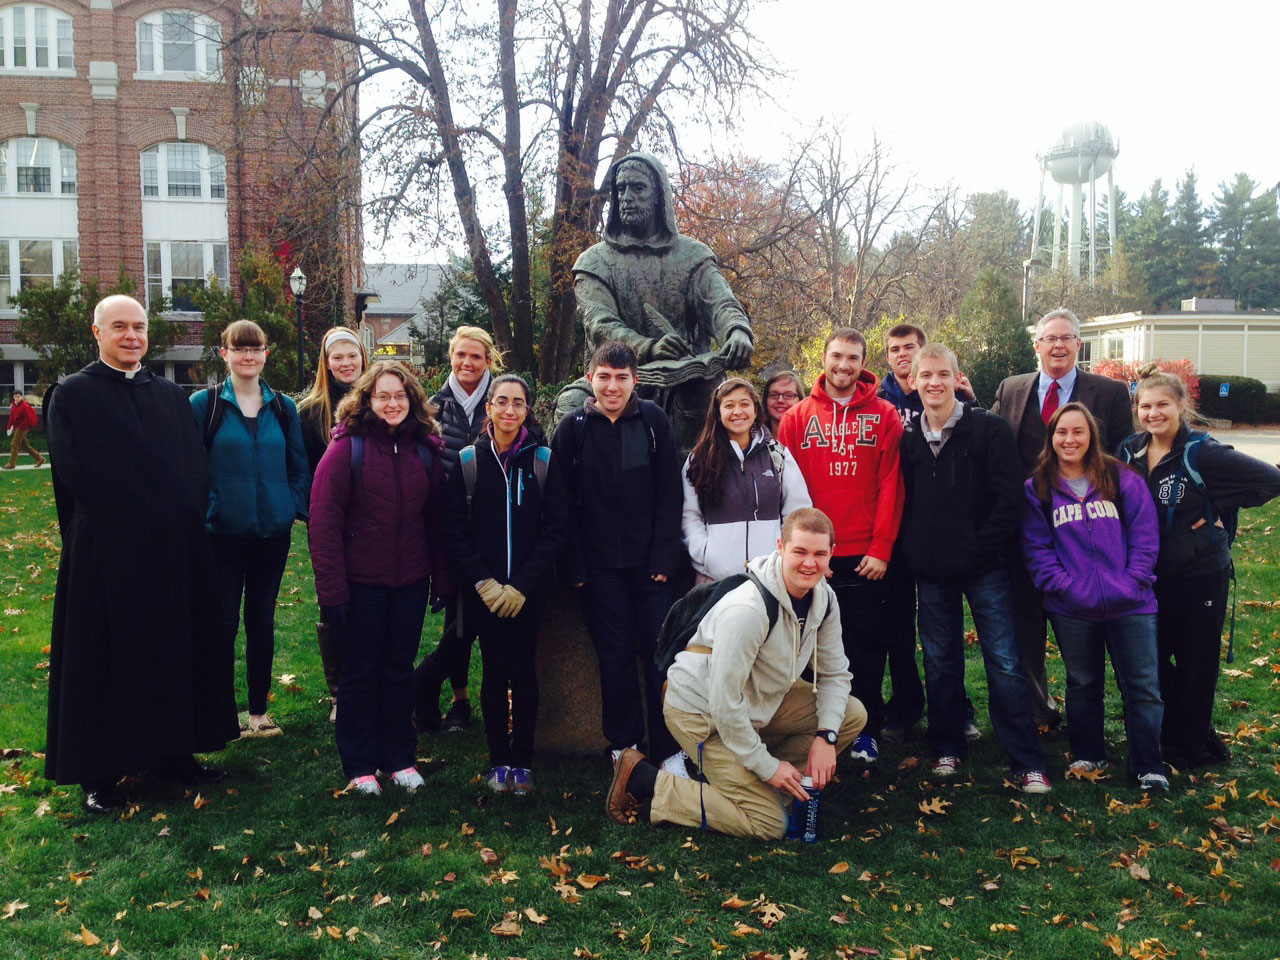 Conversatio students and faculty in front of Saint Augustine statue.